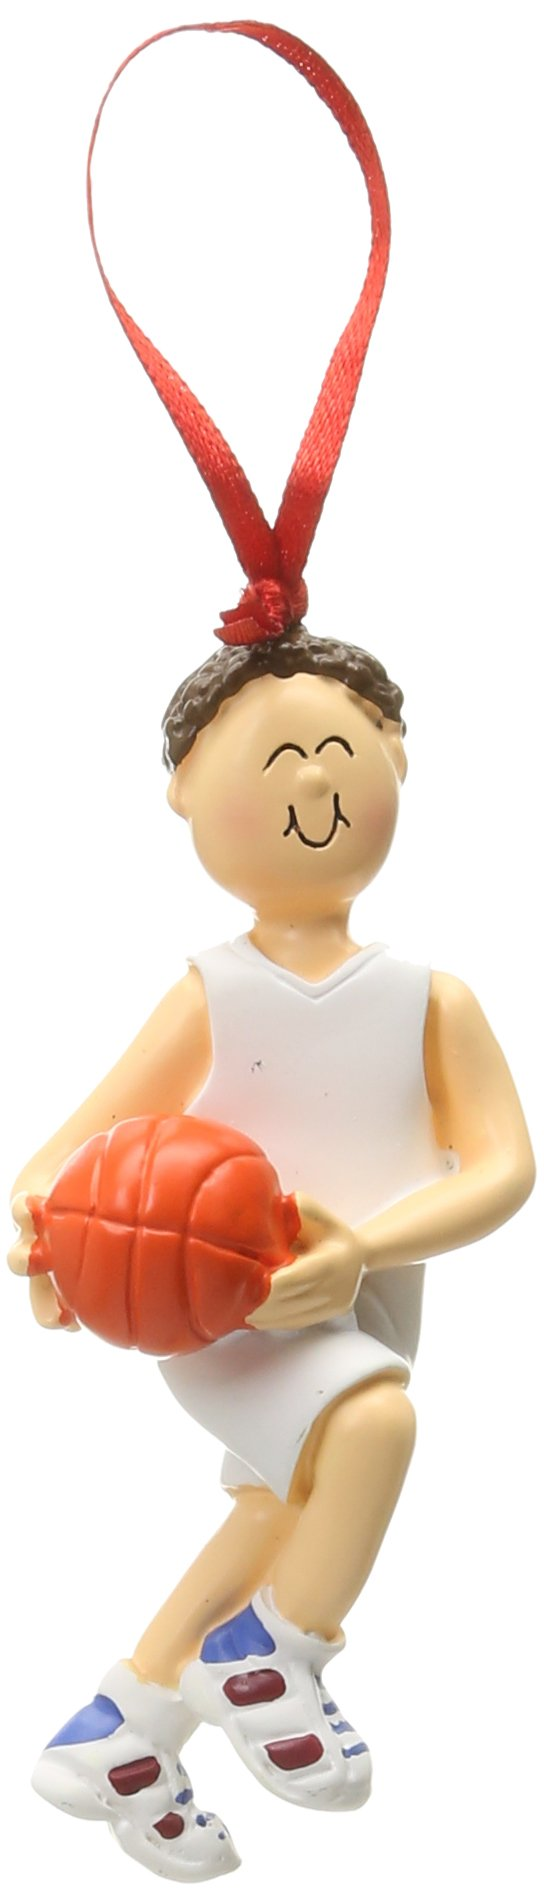 Ornament Central OC-100-MBR Male Basketball Figurine